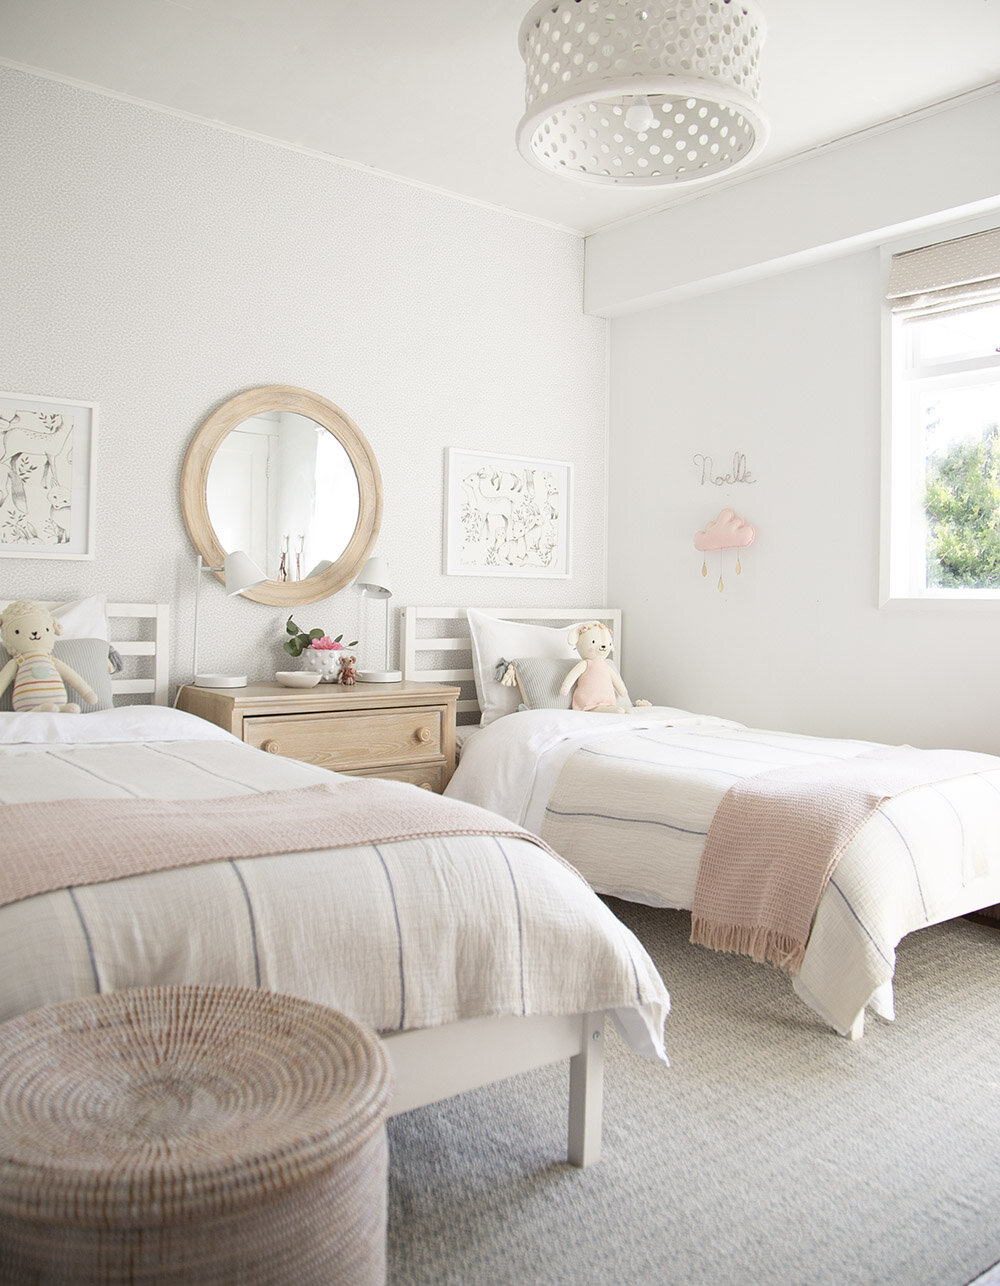 Rental House Our Twin Girls Shared Room Winter Daisy Melissa Barling Kids Interior Decorator Lifestyle Blogger